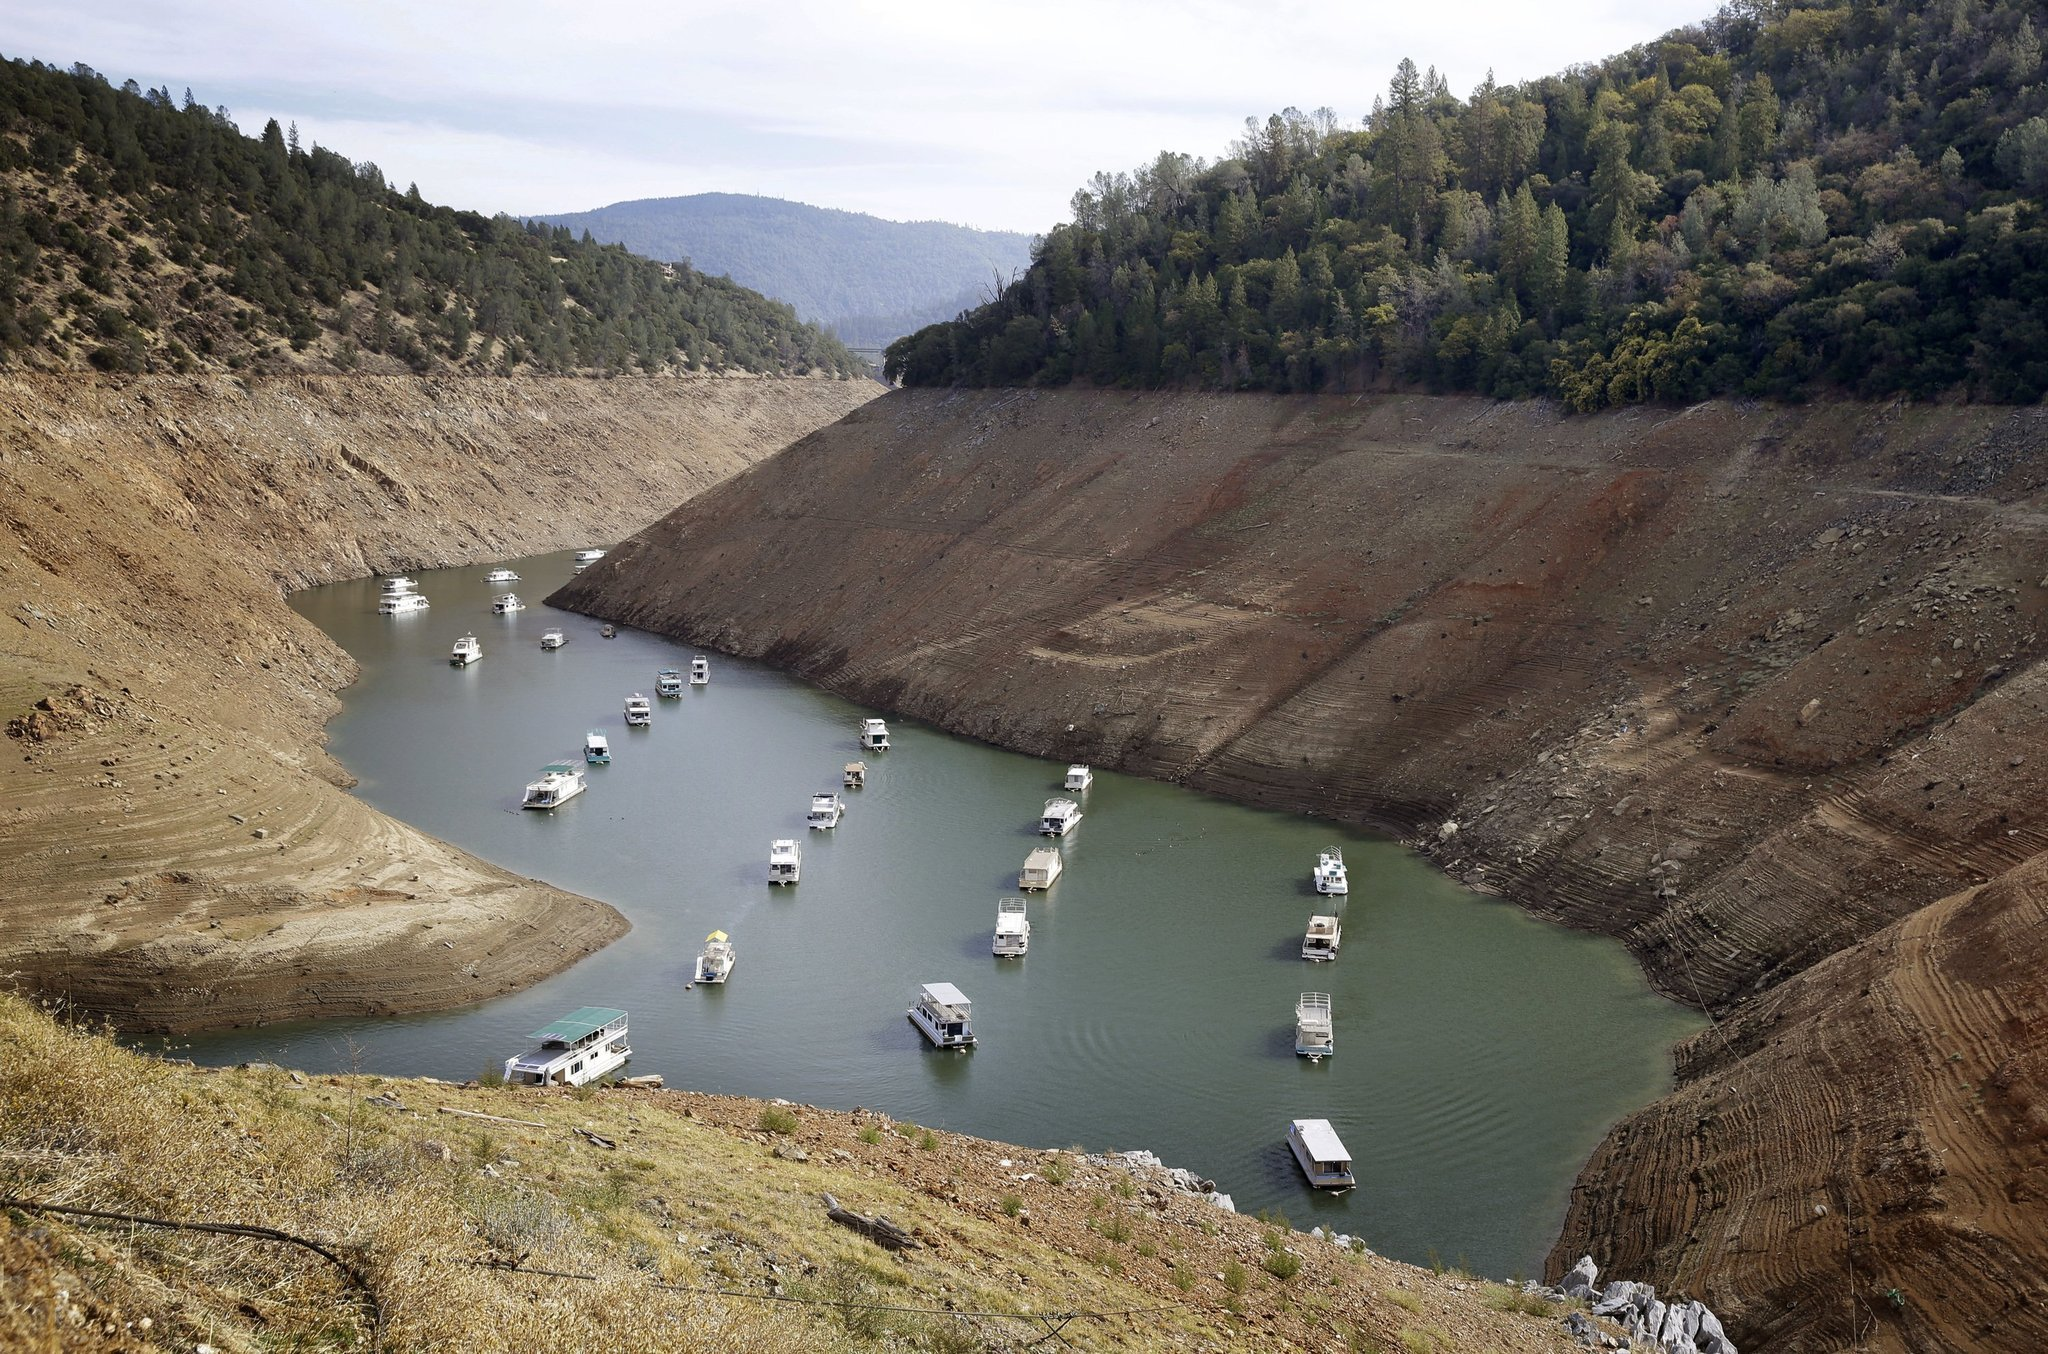 California has about one year of water left. Will you ration now?